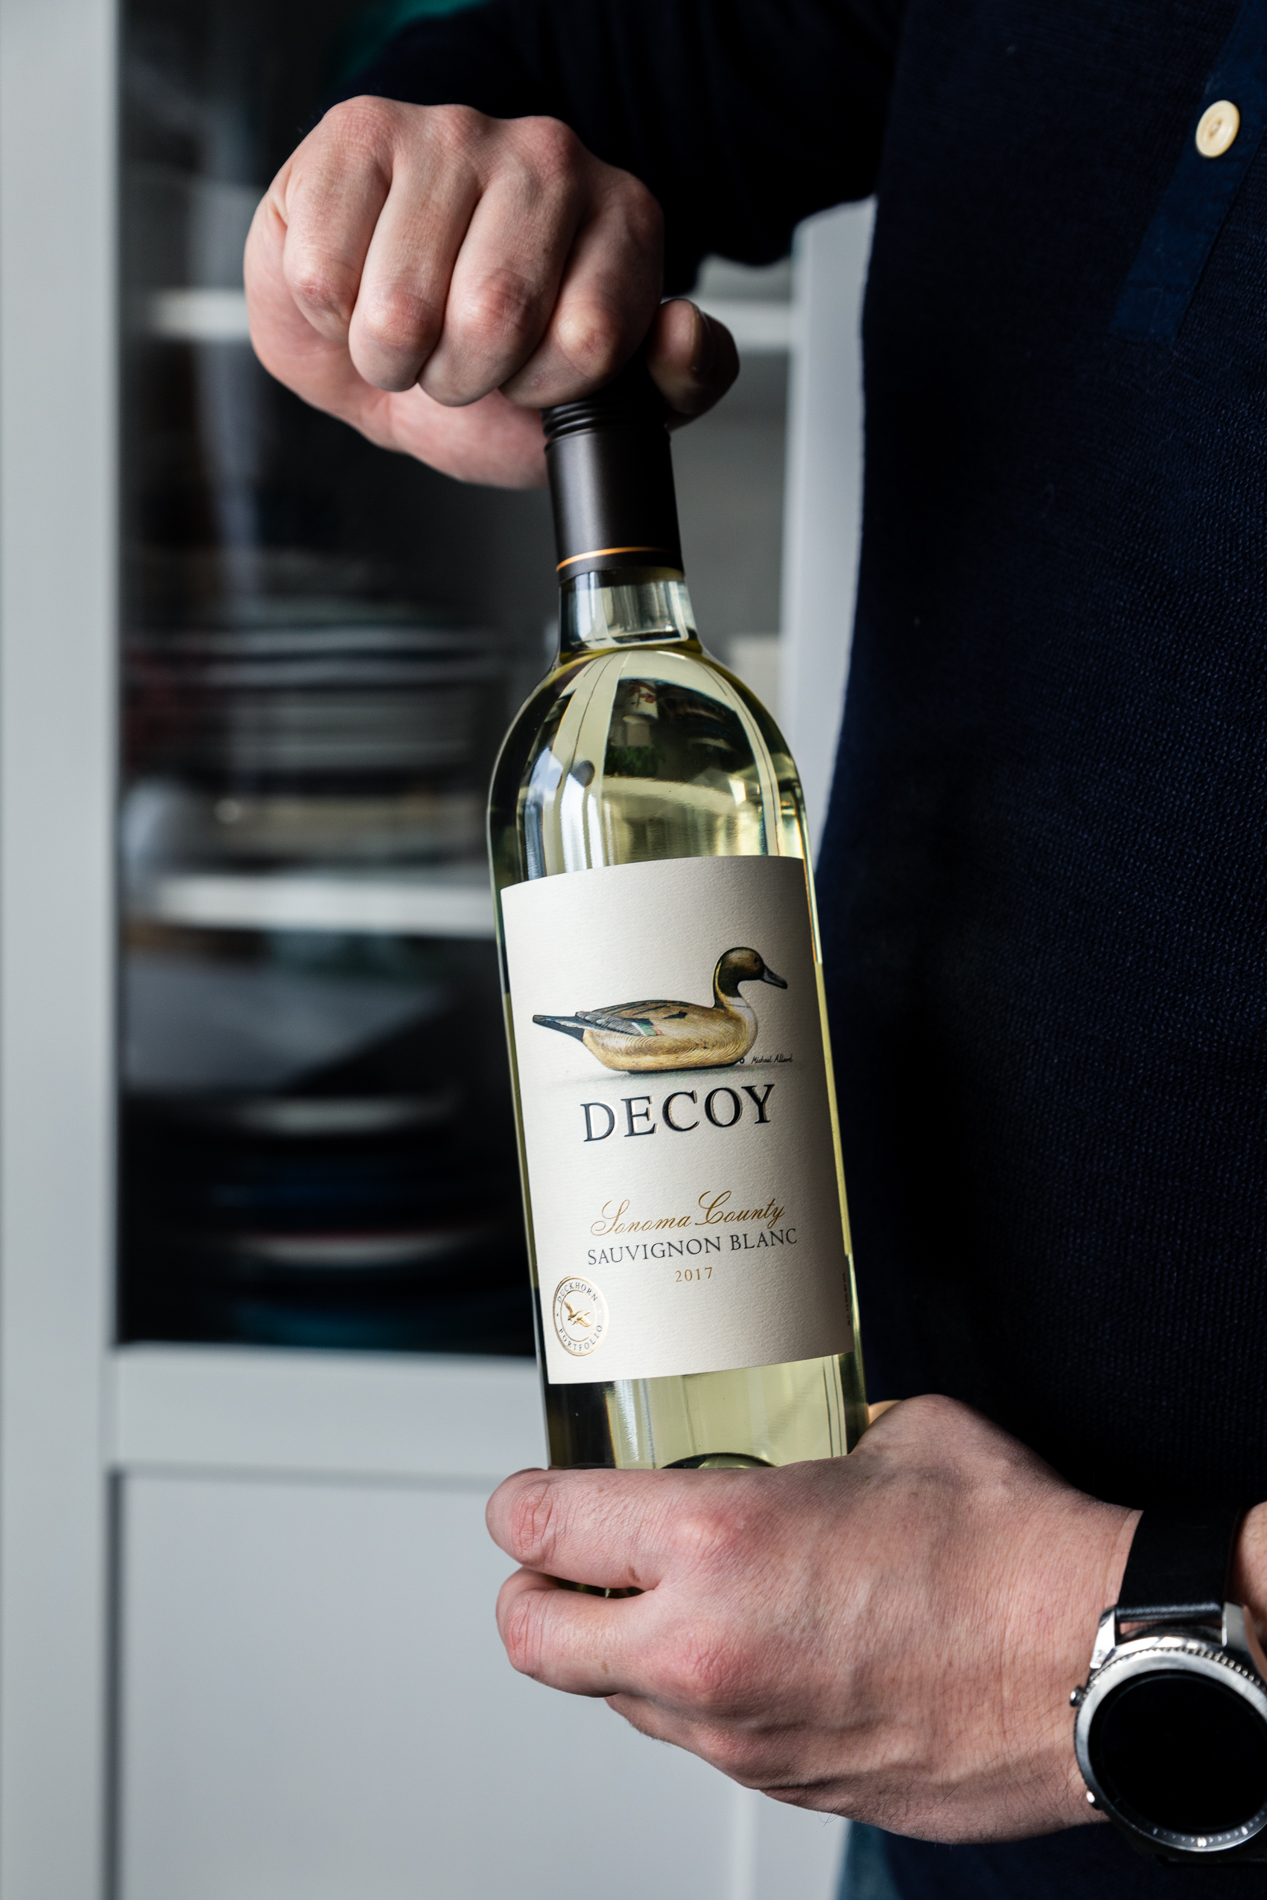 View of a man opening a bottle of Decoy Wine Sauvignon Blanc.